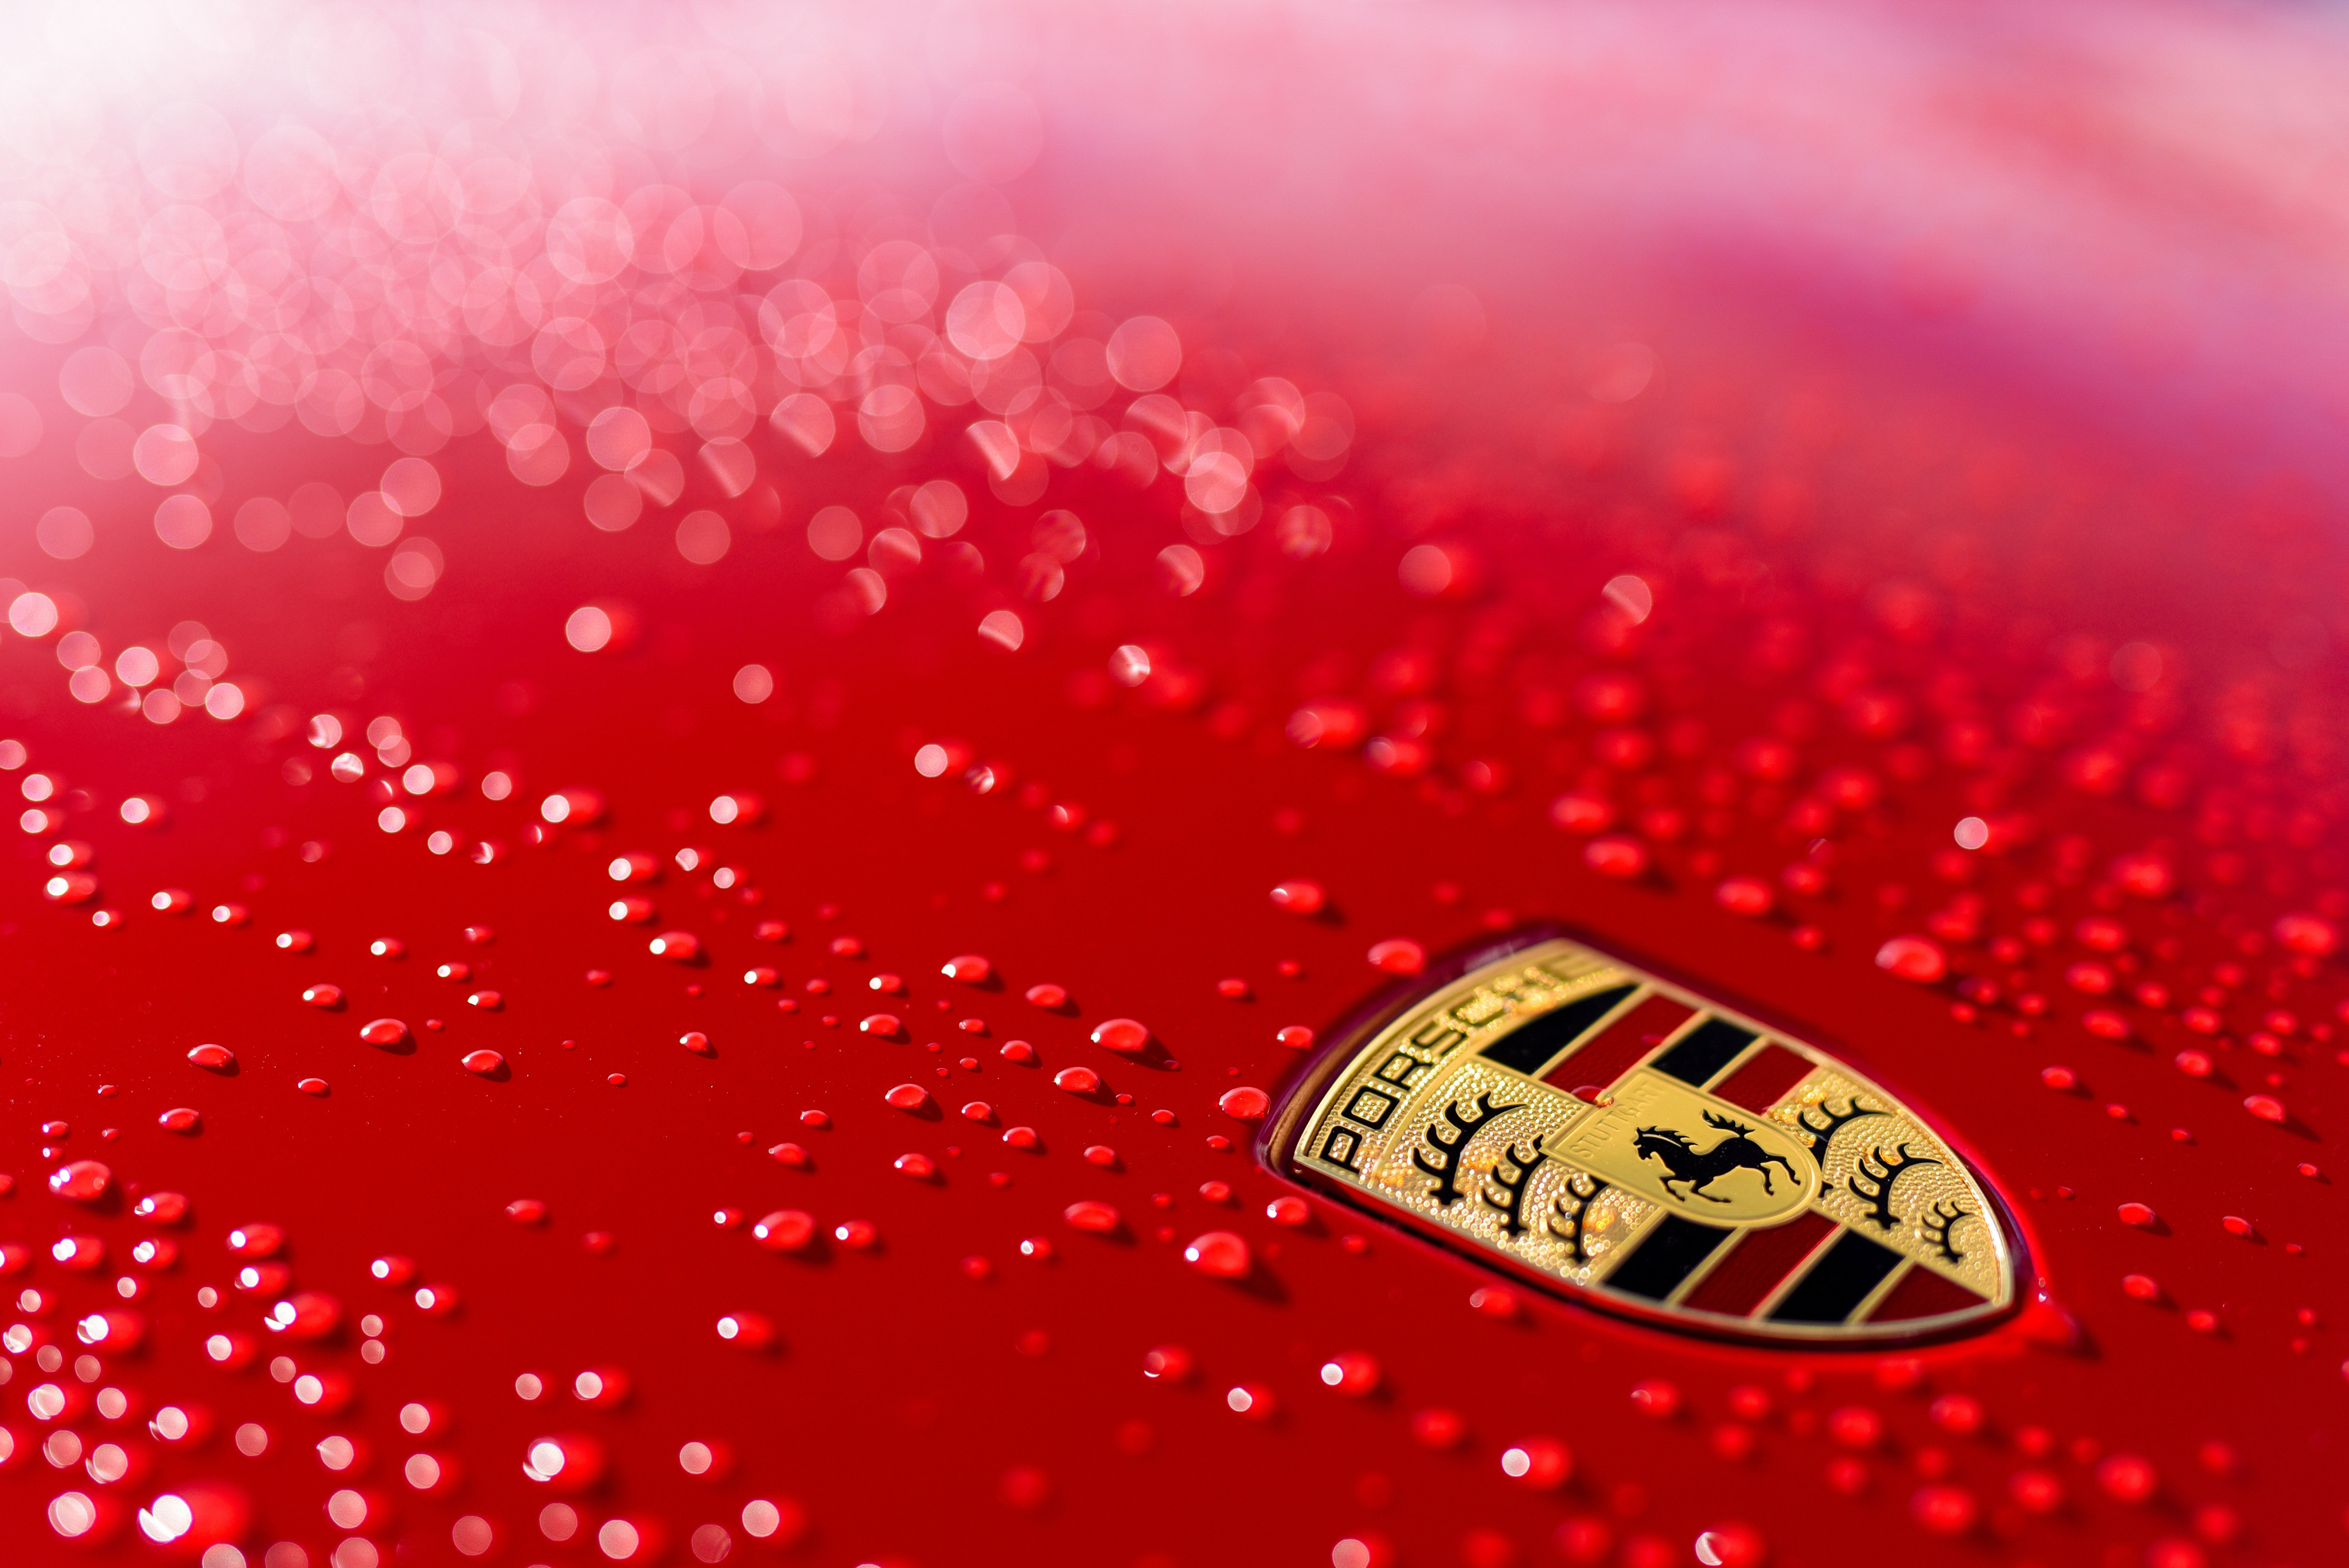 1242x2688 Porsche Logo 4k Iphone Xs Max Hd 4k Wallpapers Images Backgrounds Photos And Pictures